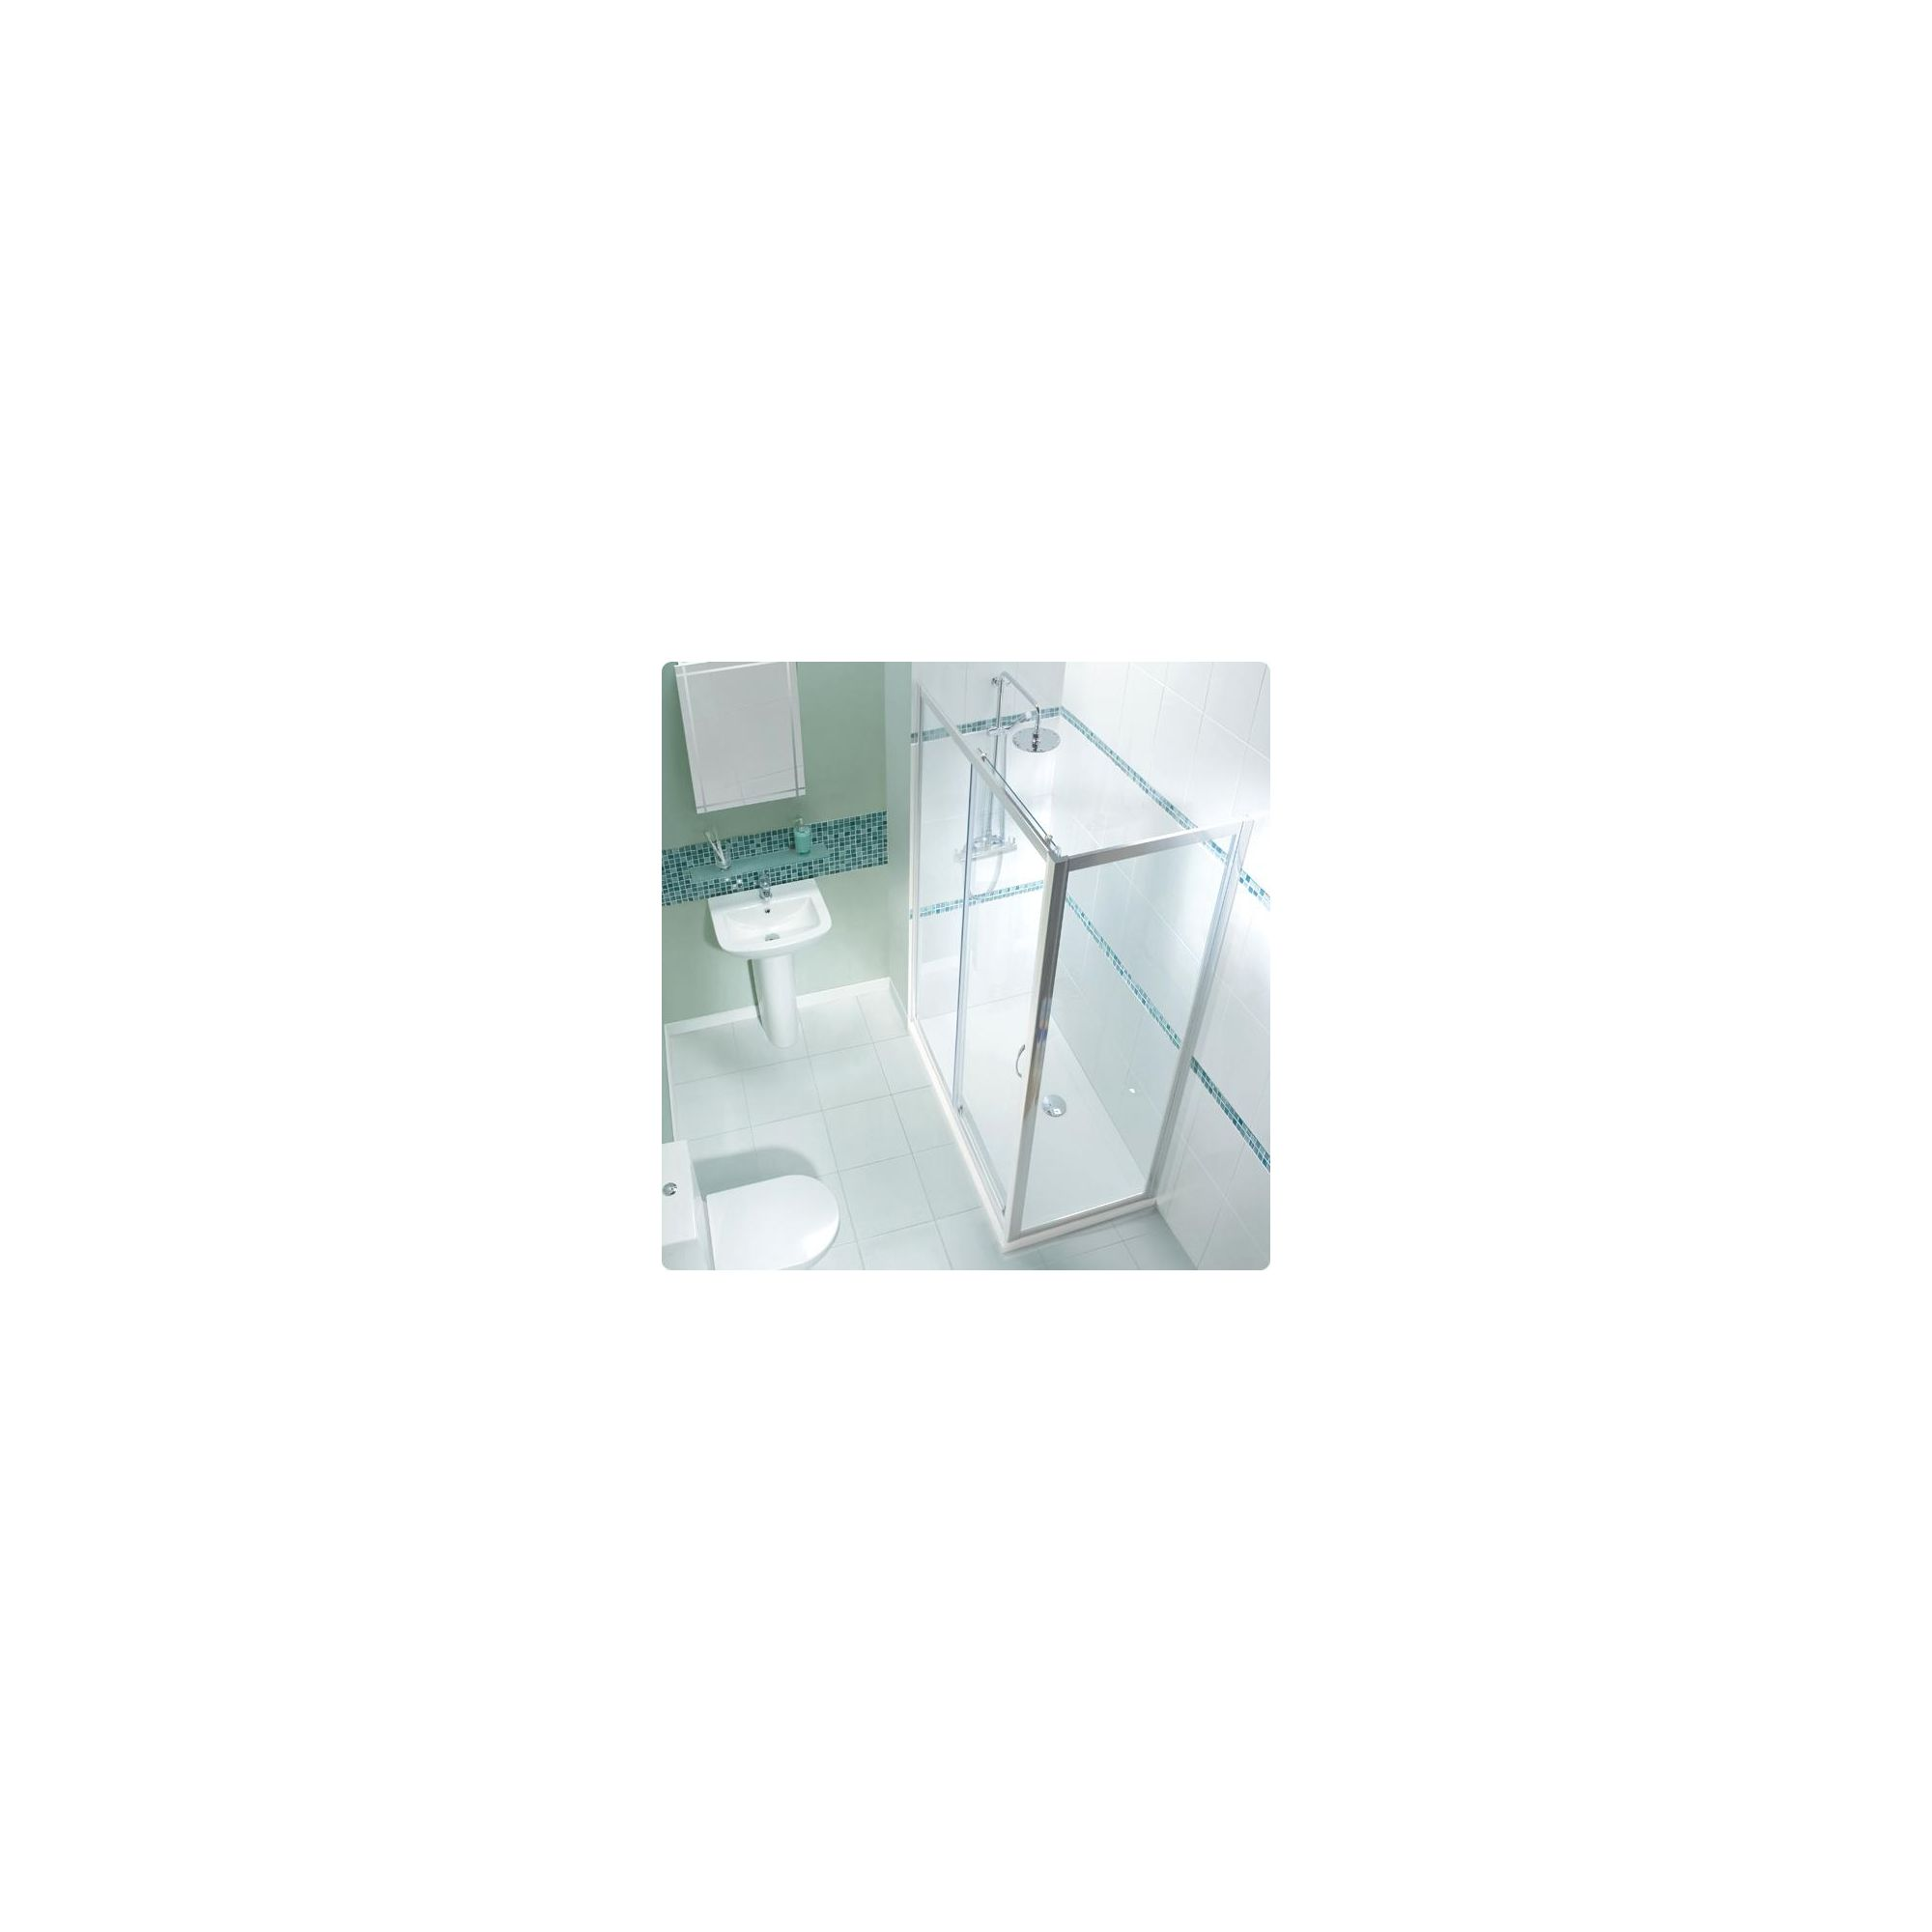 Balterley Framed Sliding Shower Enclosure, 1100mm x 760mm, Standard Tray, 6mm Glass at Tesco Direct